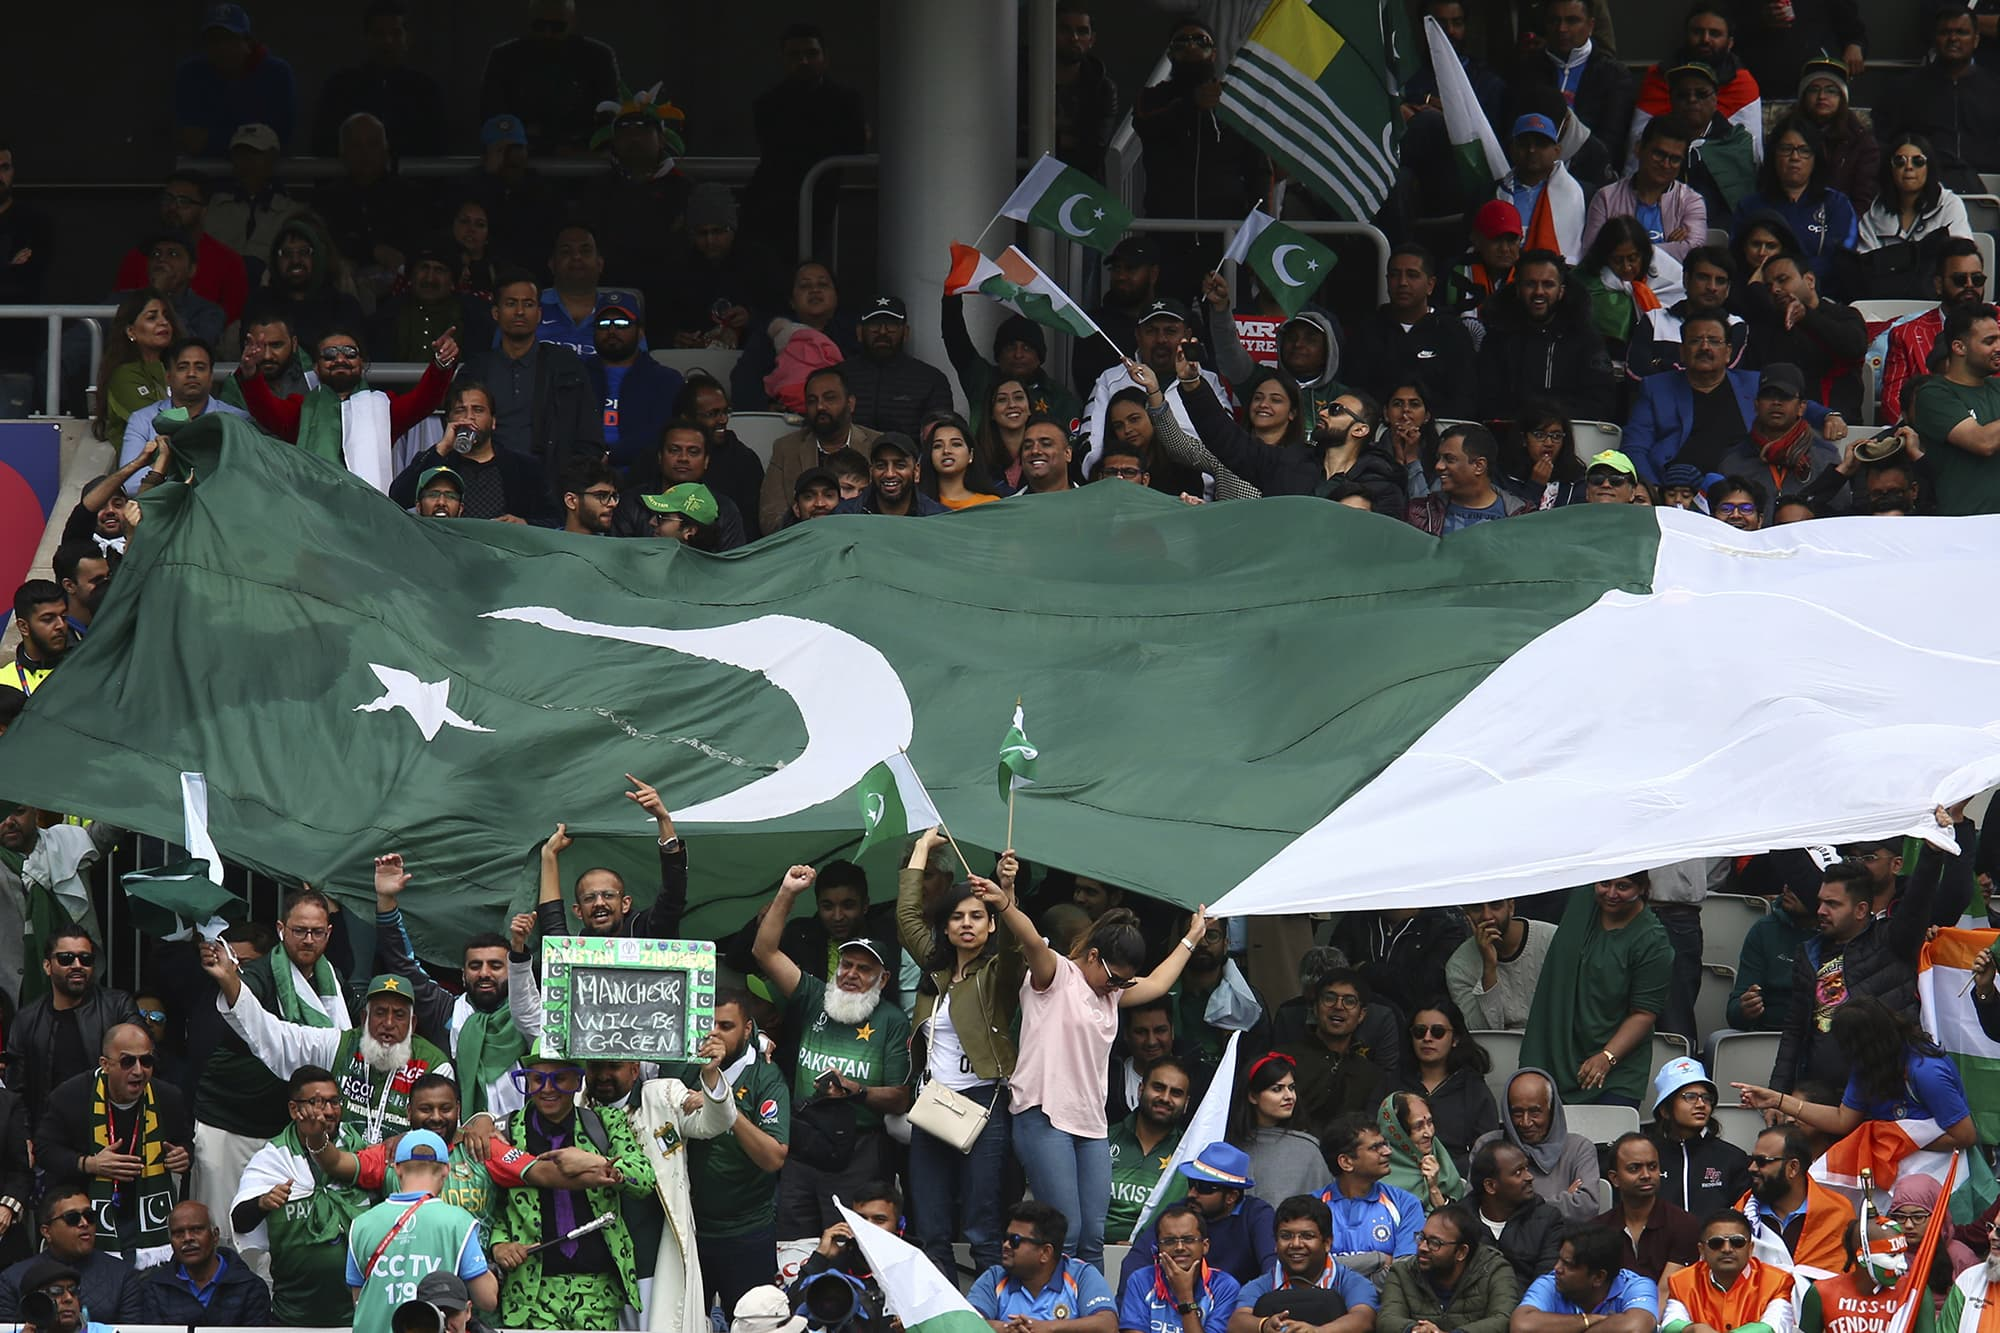 Pakistani fans holding a large flag cheer during the match. ─ AP